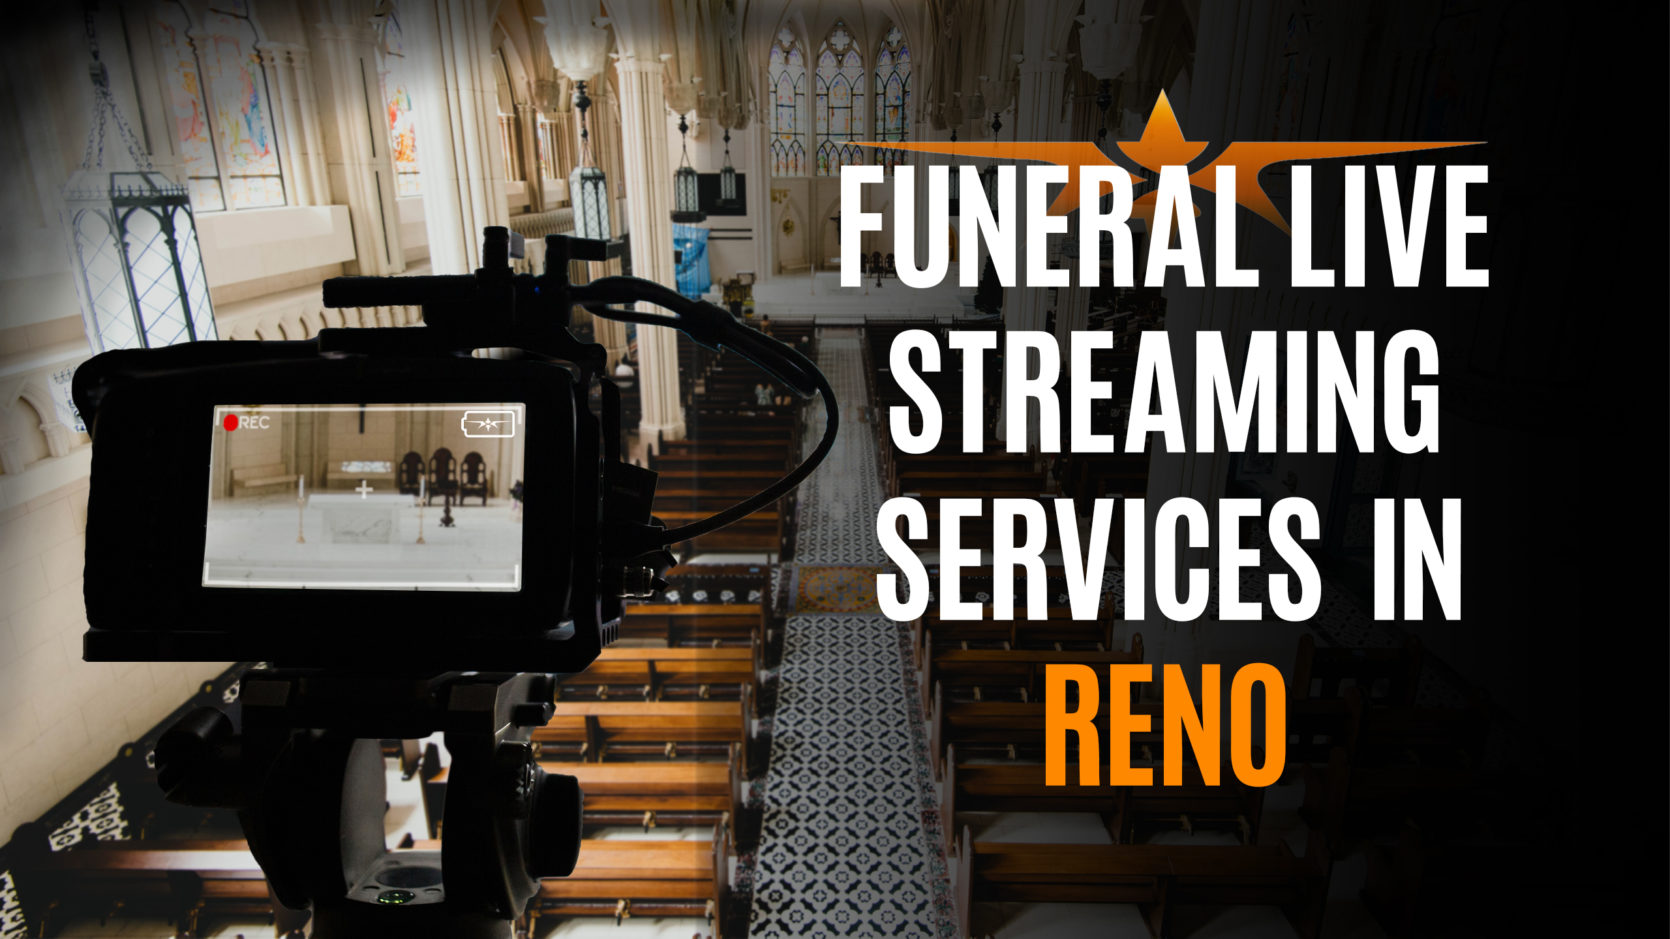 Funeral Live Streaming Services in Reno